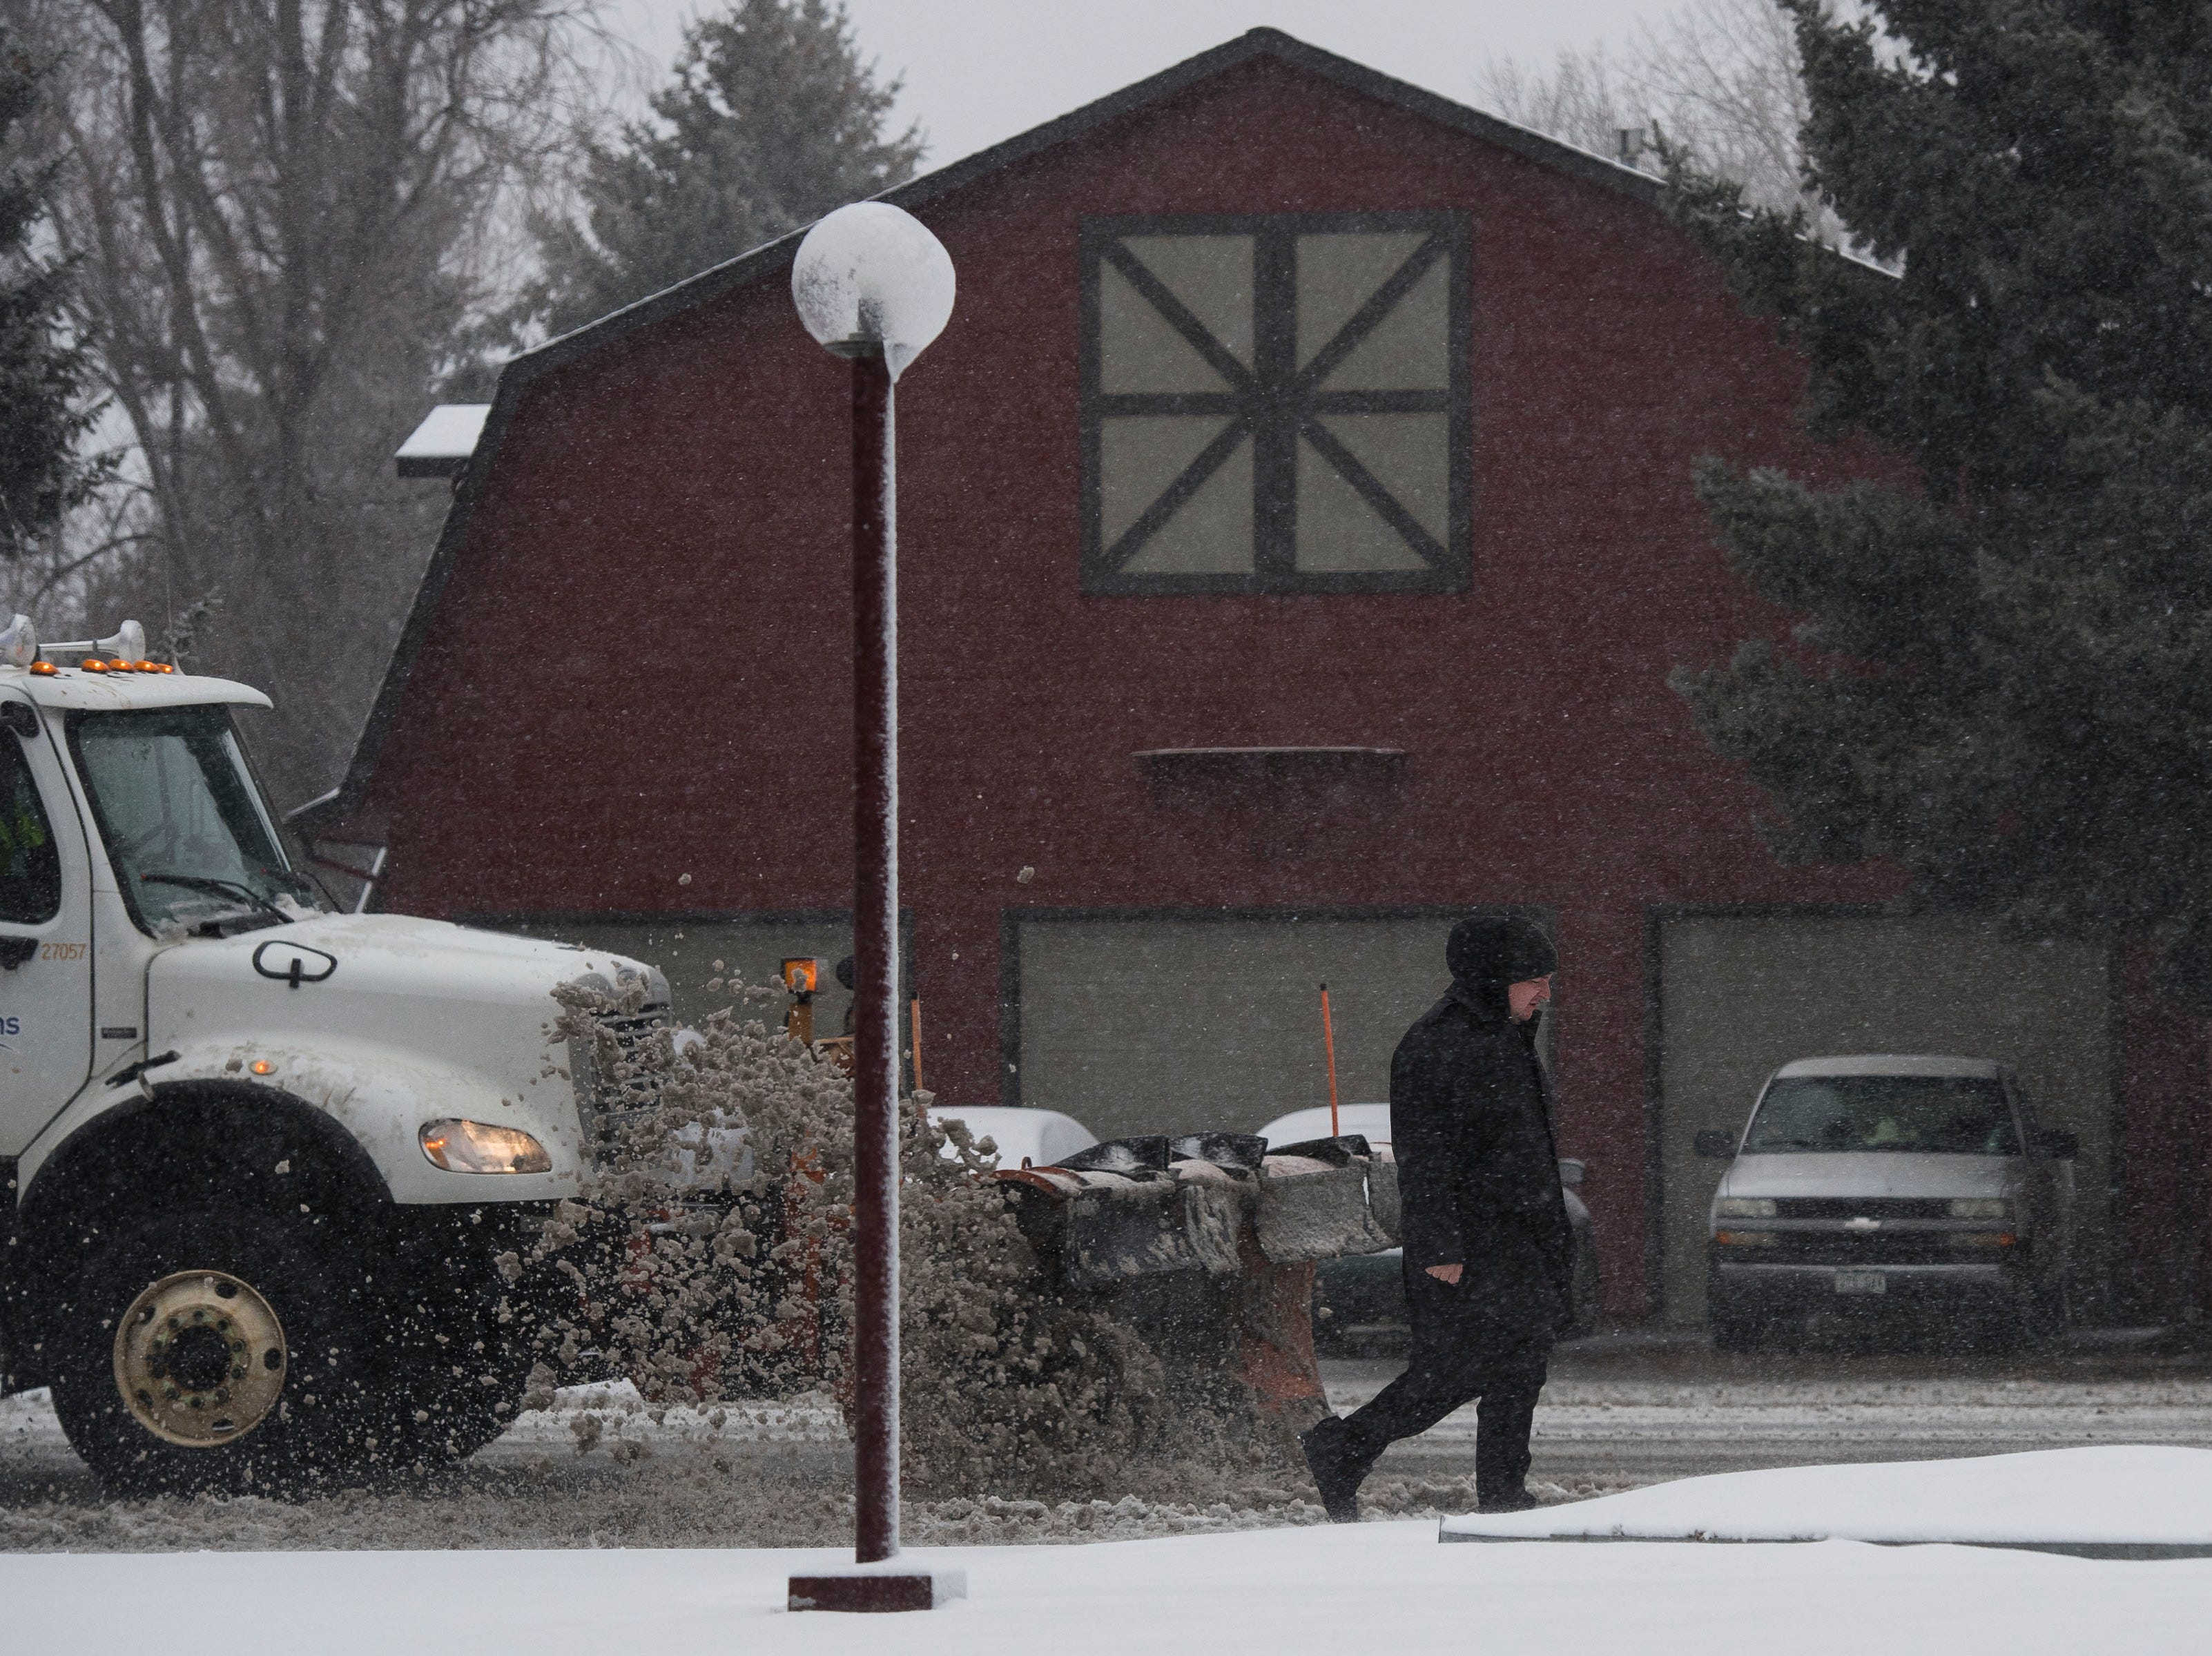 A snow plow clears the outside lane of South Lemay Avenue on Wednesday, March 13, 2019, in Fort Collins, Colo.